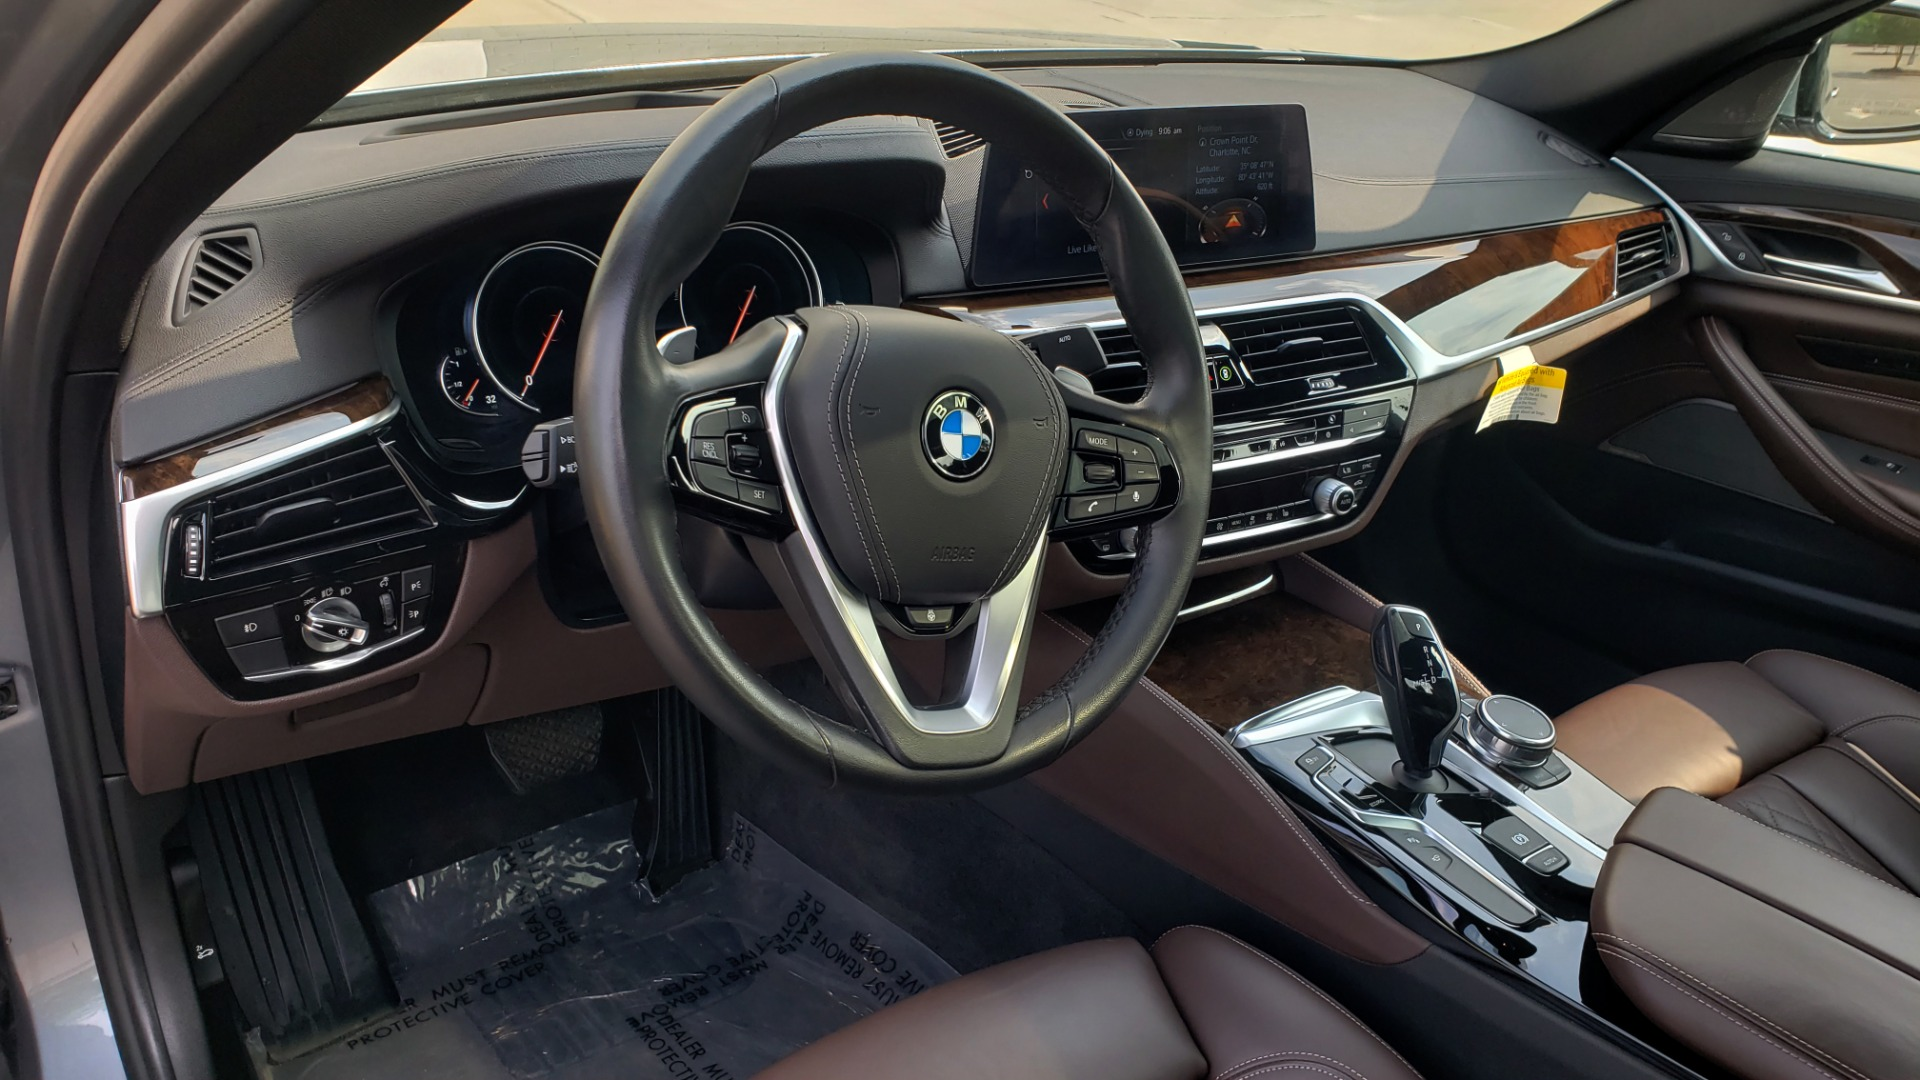 Used 2018 BMW 5 SERIES 540I XDRIVE PREMIUM / EXECUTIVE / LUXURY / H/K SND / REMOTE CONTROL PARKING for sale $40,995 at Formula Imports in Charlotte NC 28227 35